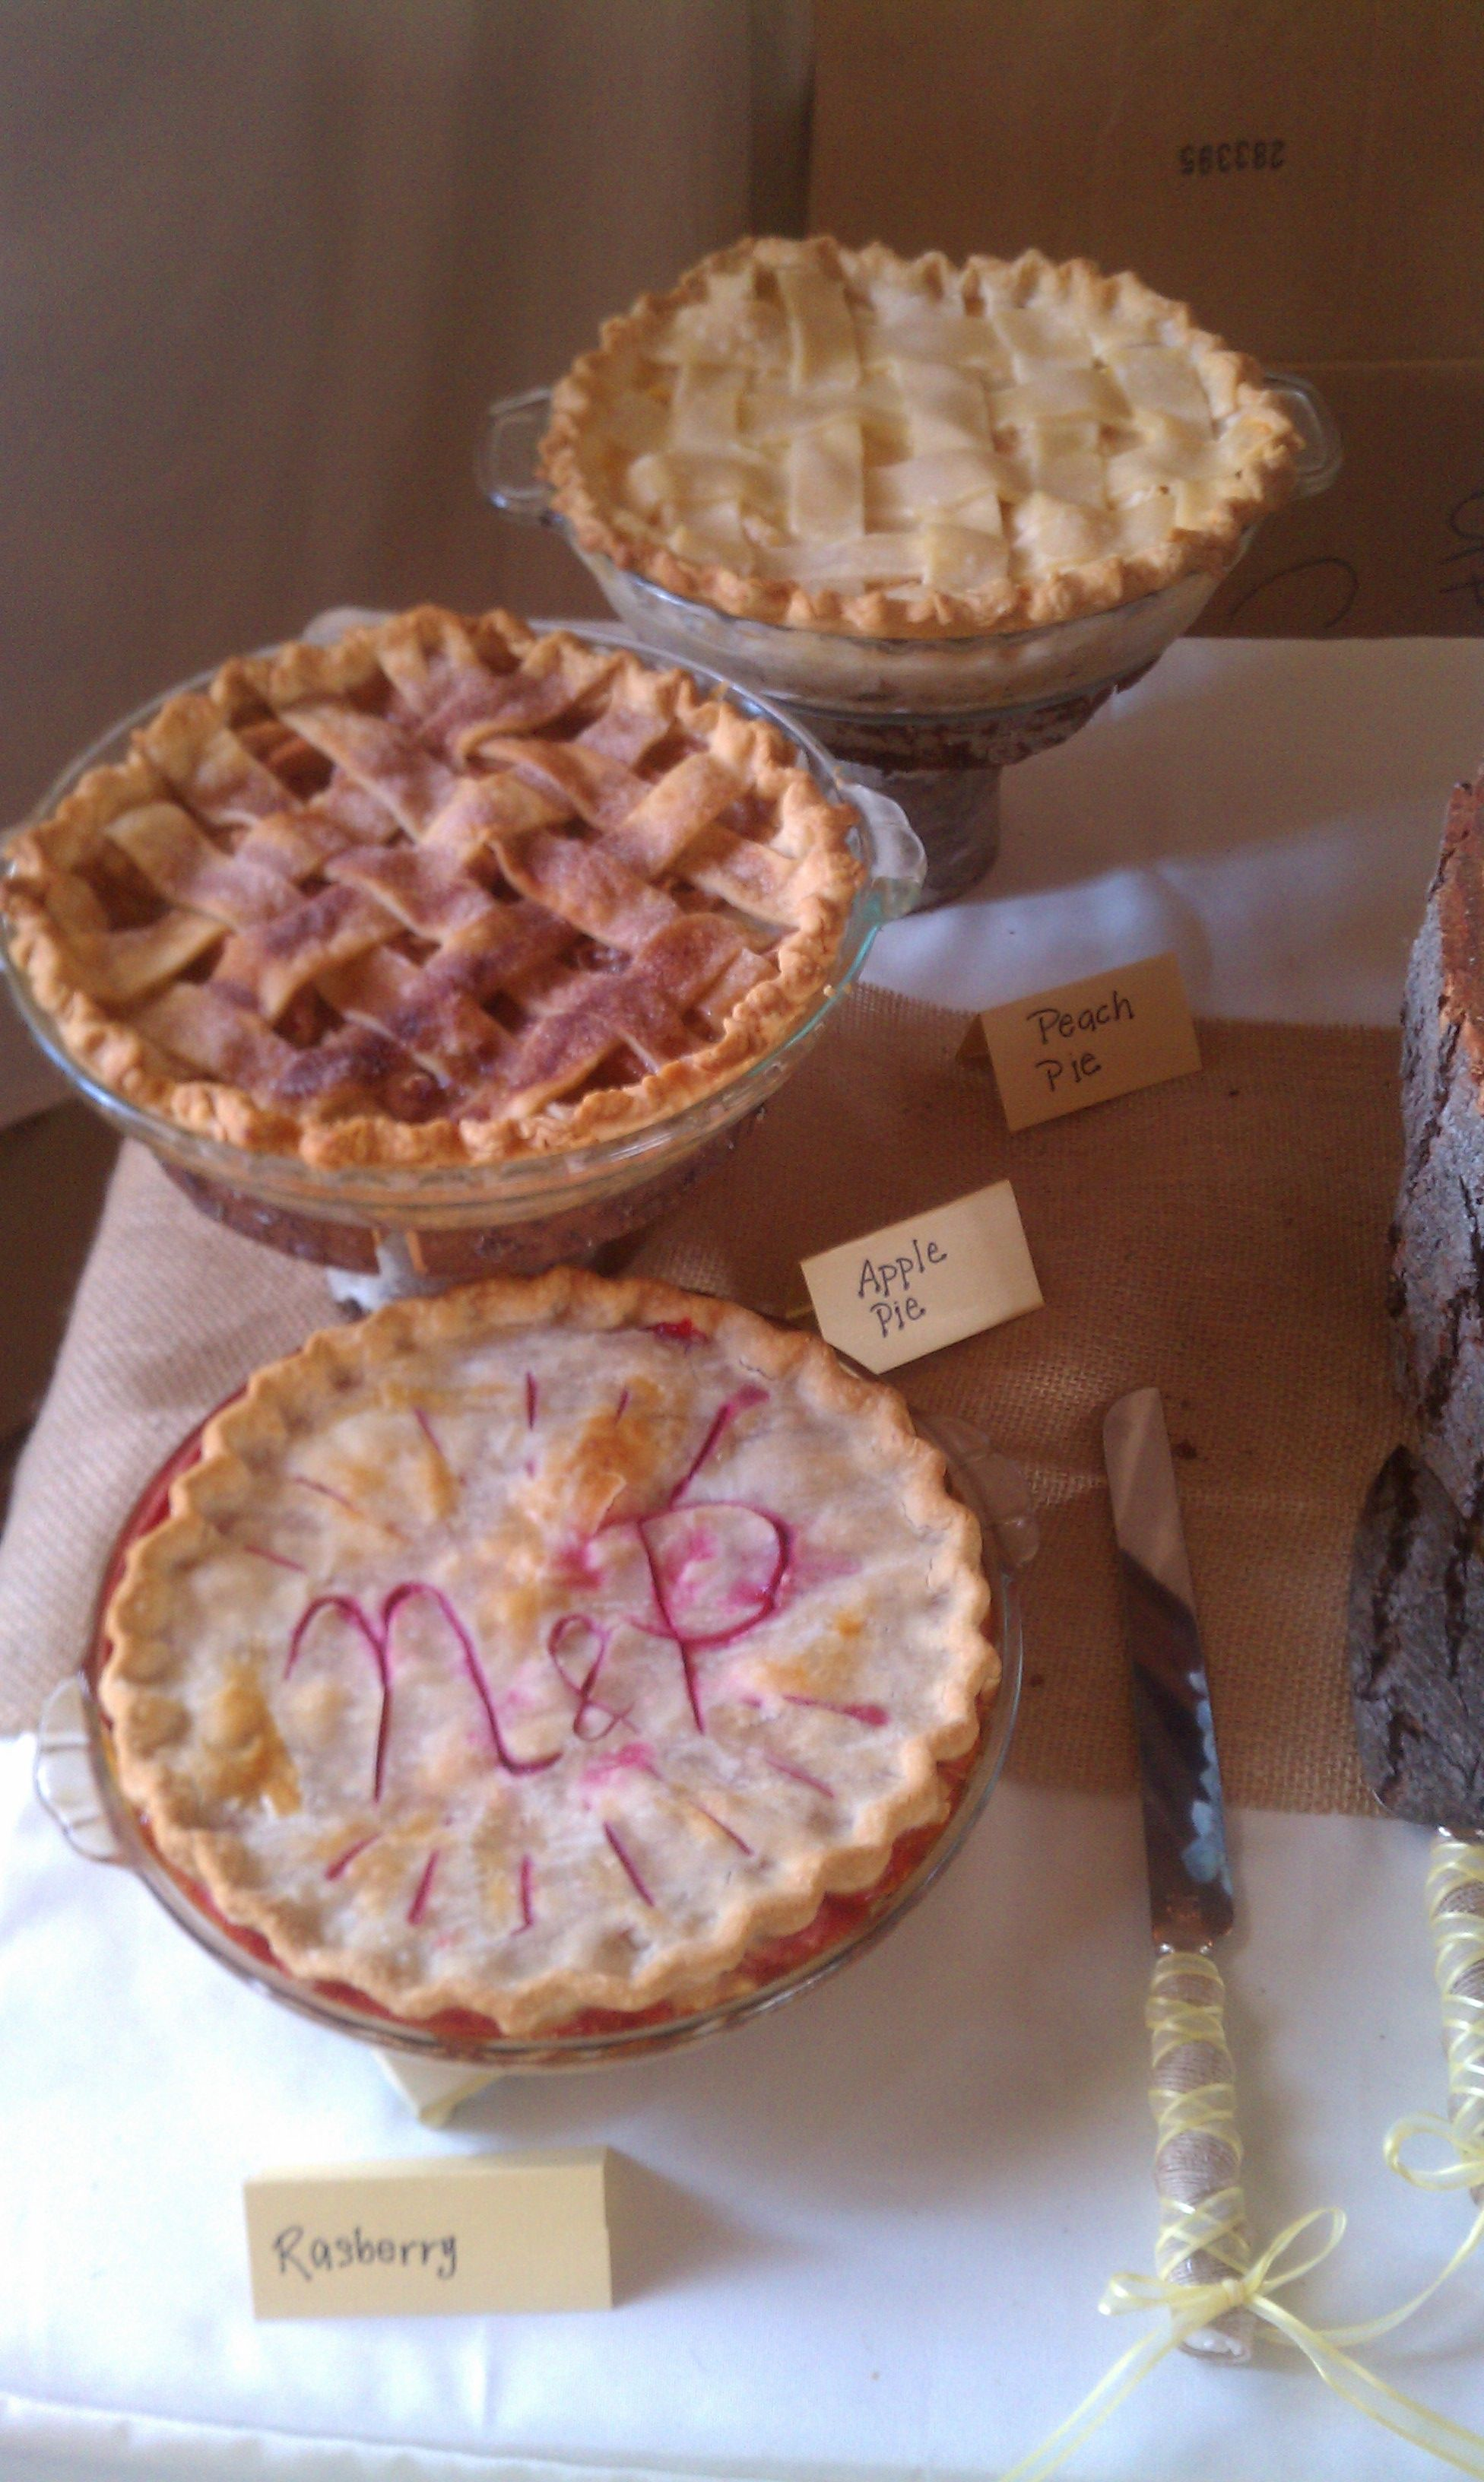 Wedding pies instead of cake! We don't like cake, perfect!